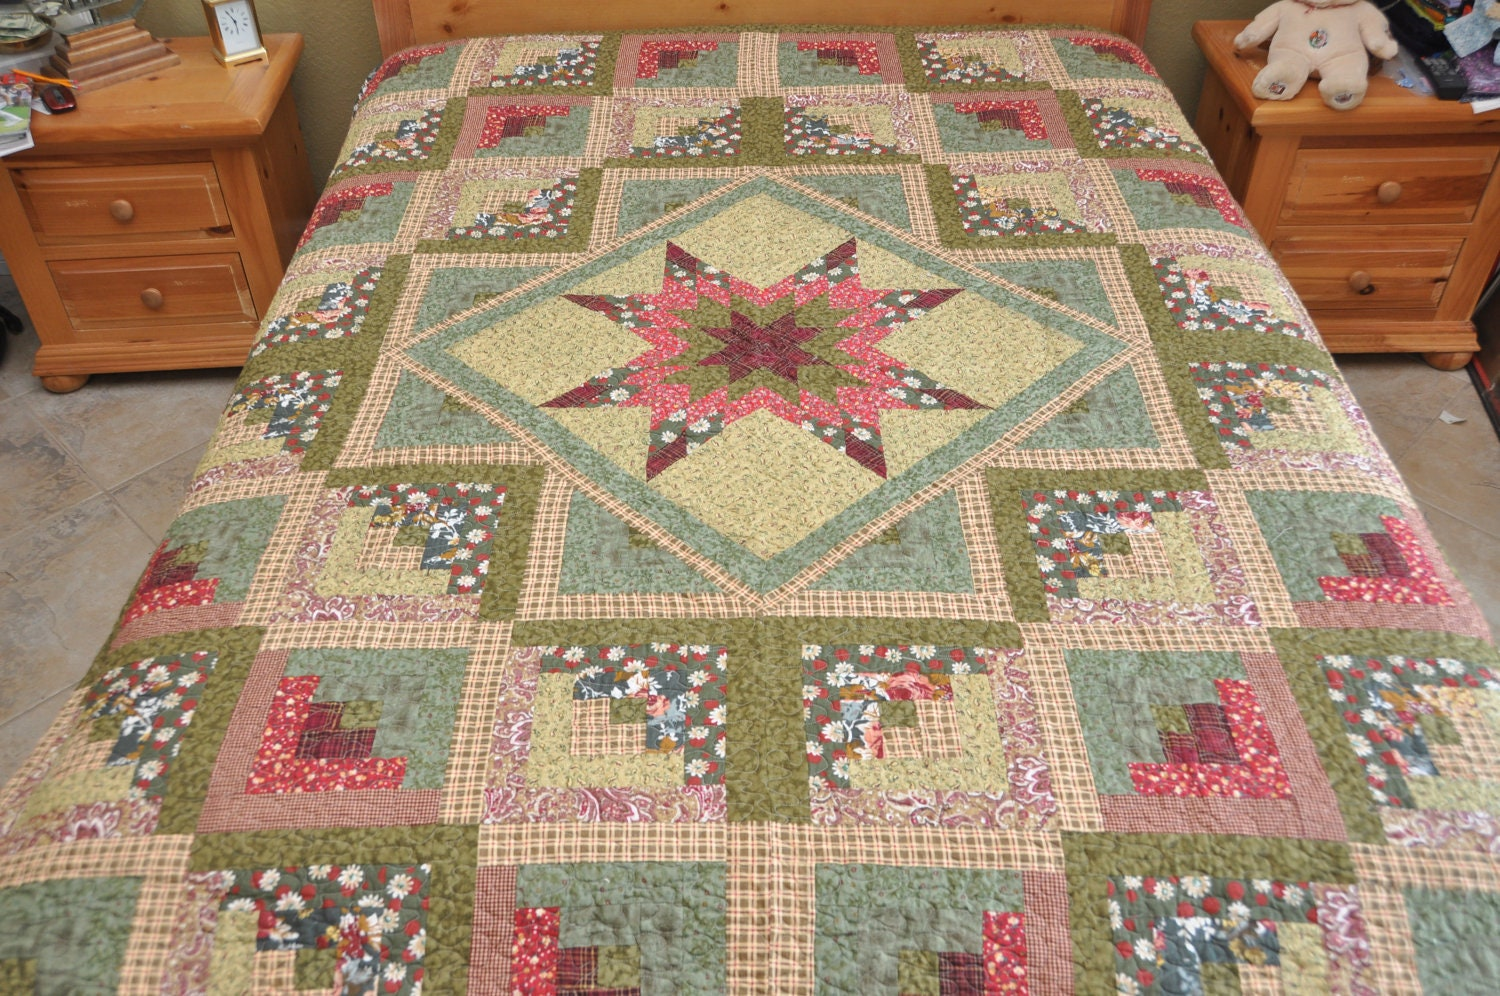 Log cabin pineapples courthouse steps quilts on pinterest